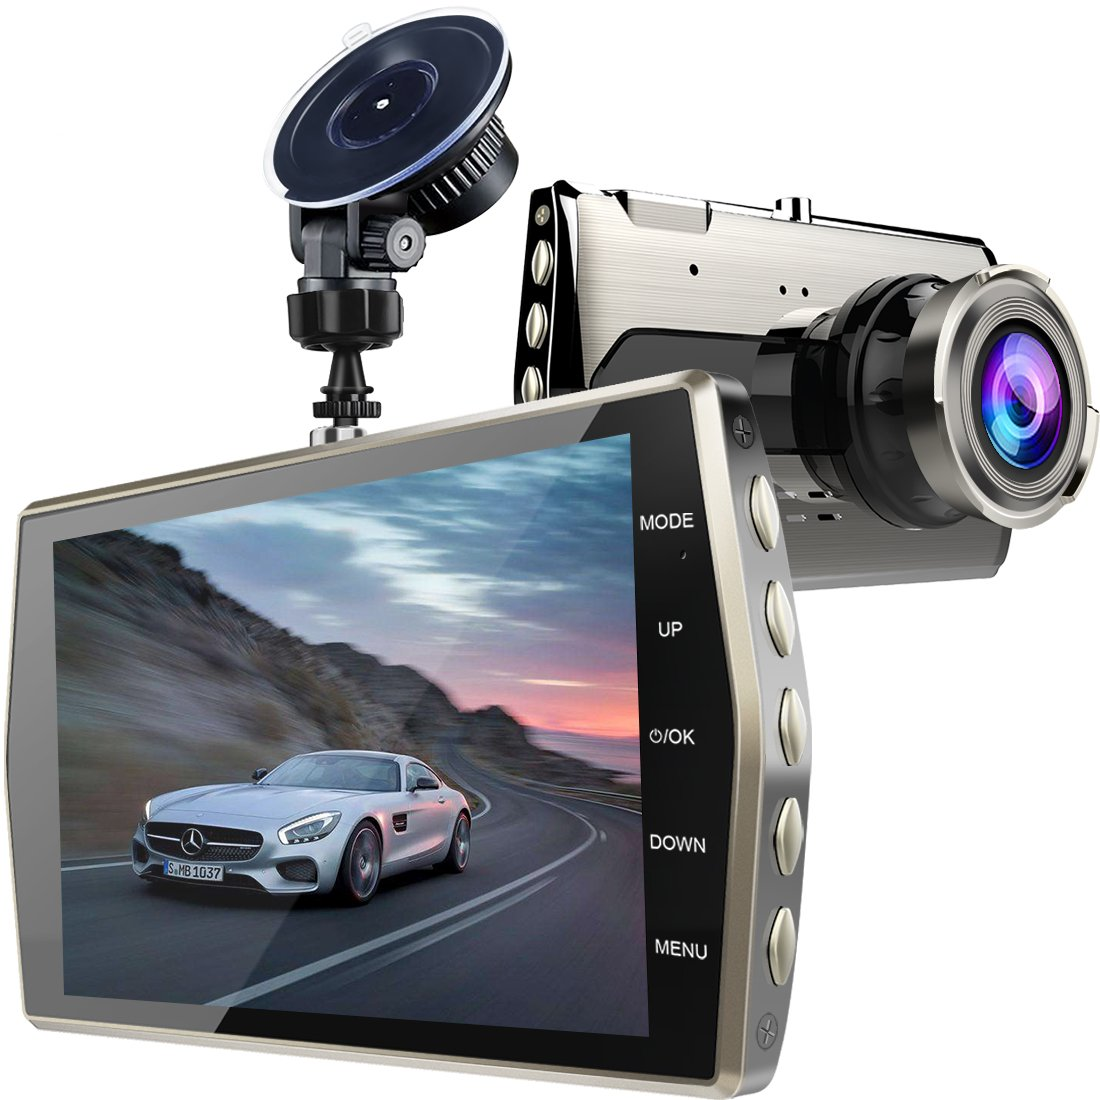 Dash Cam, Zintou 4'' LCD Dash Camera FHD 1080P, 170 Degree Wide Angle Dashboard Camera Recorder with G-Sensor, Loop Recording and NightHawk Vision,SD Card Not Included